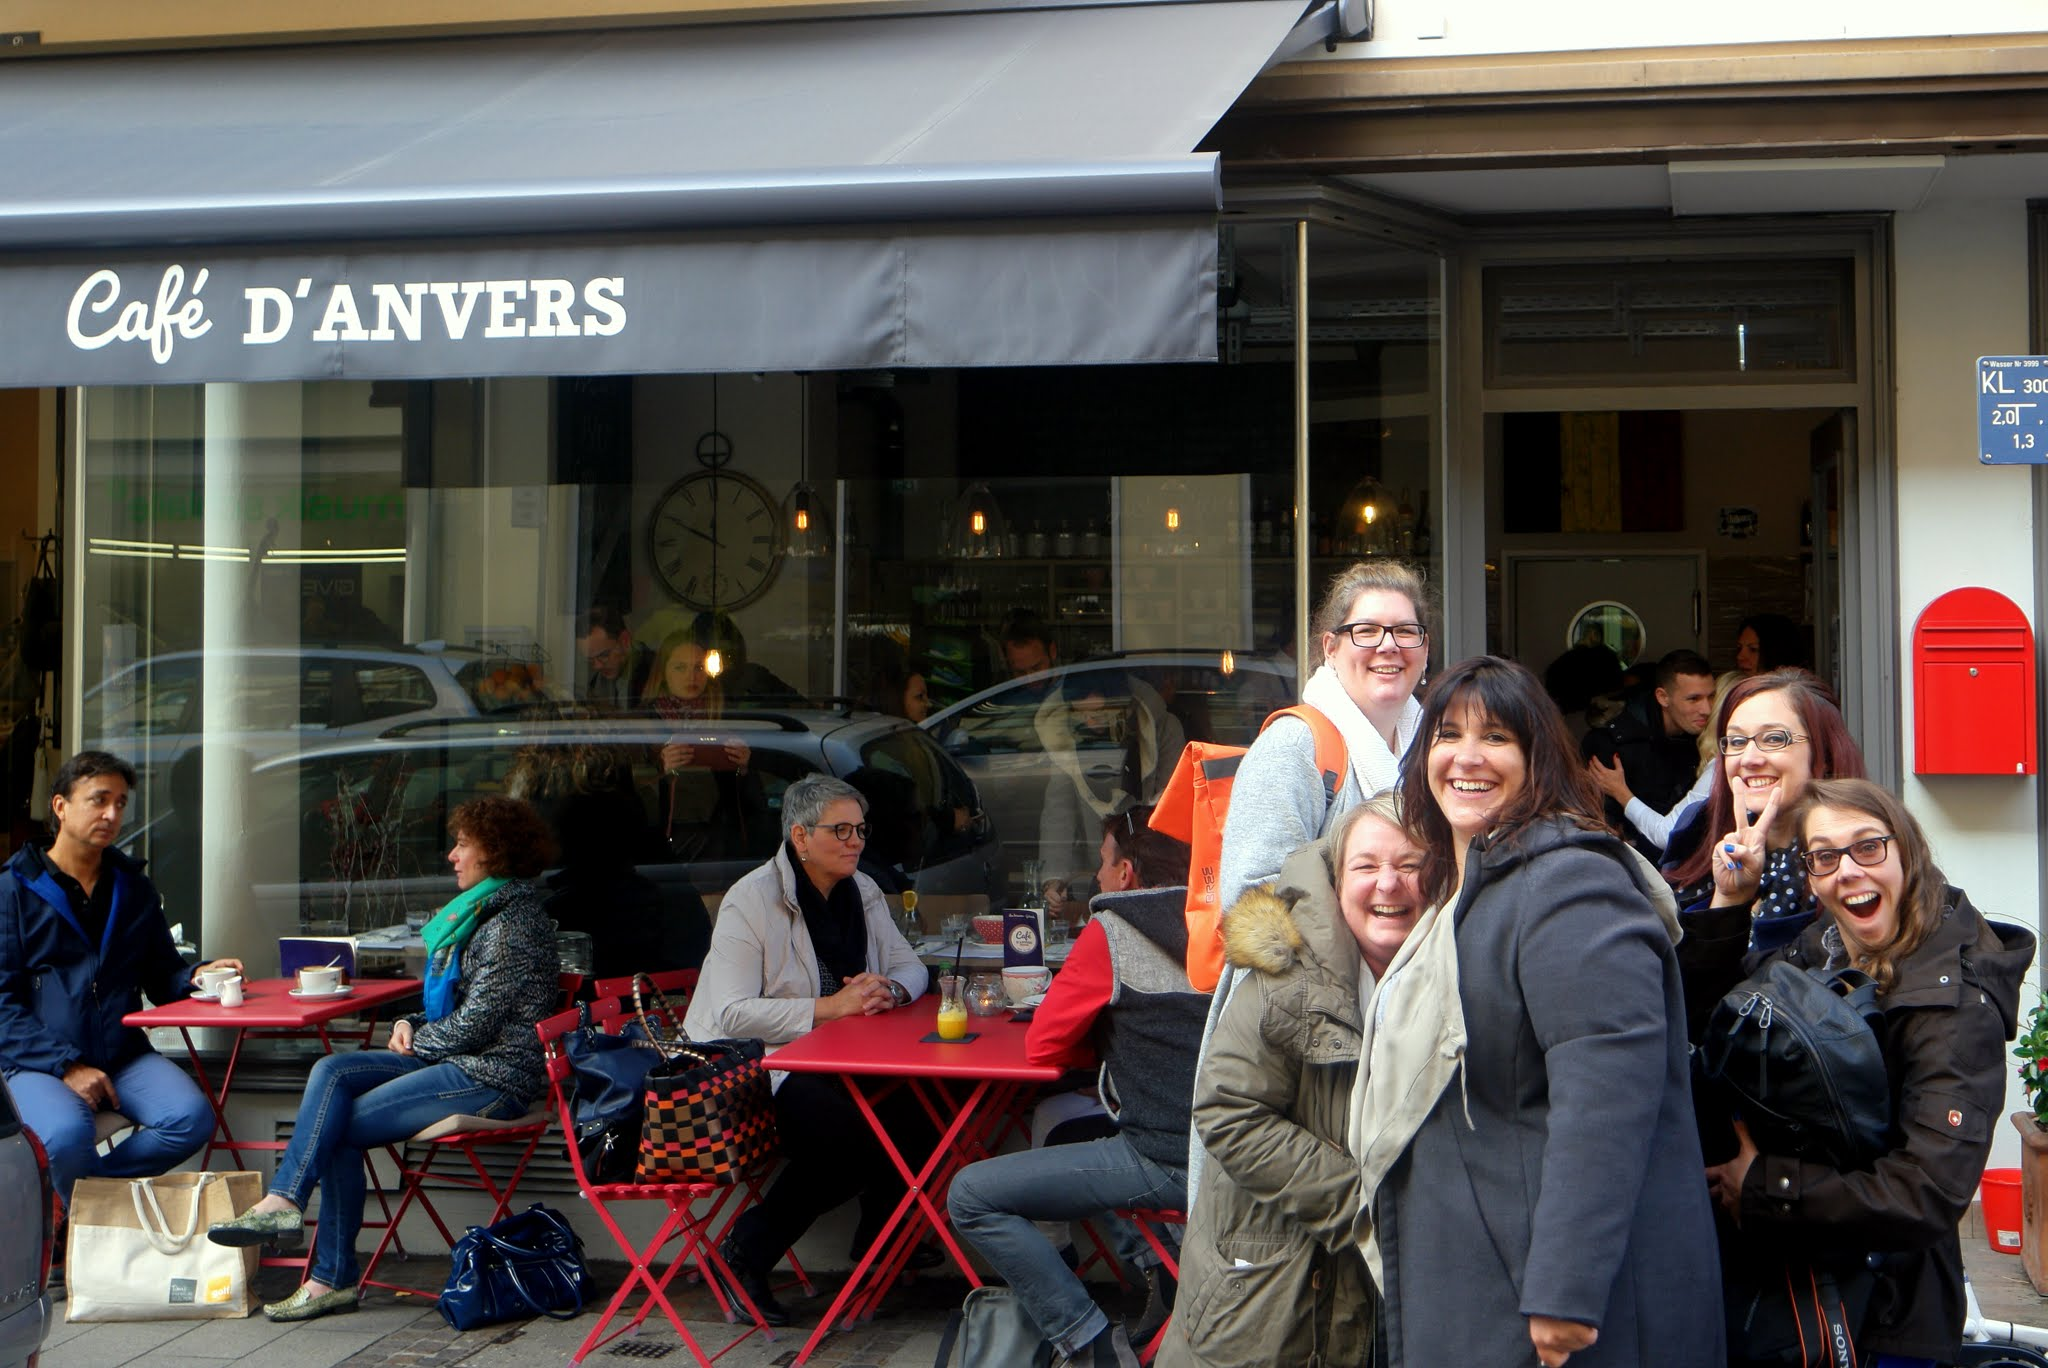 Cafe d'Anvers